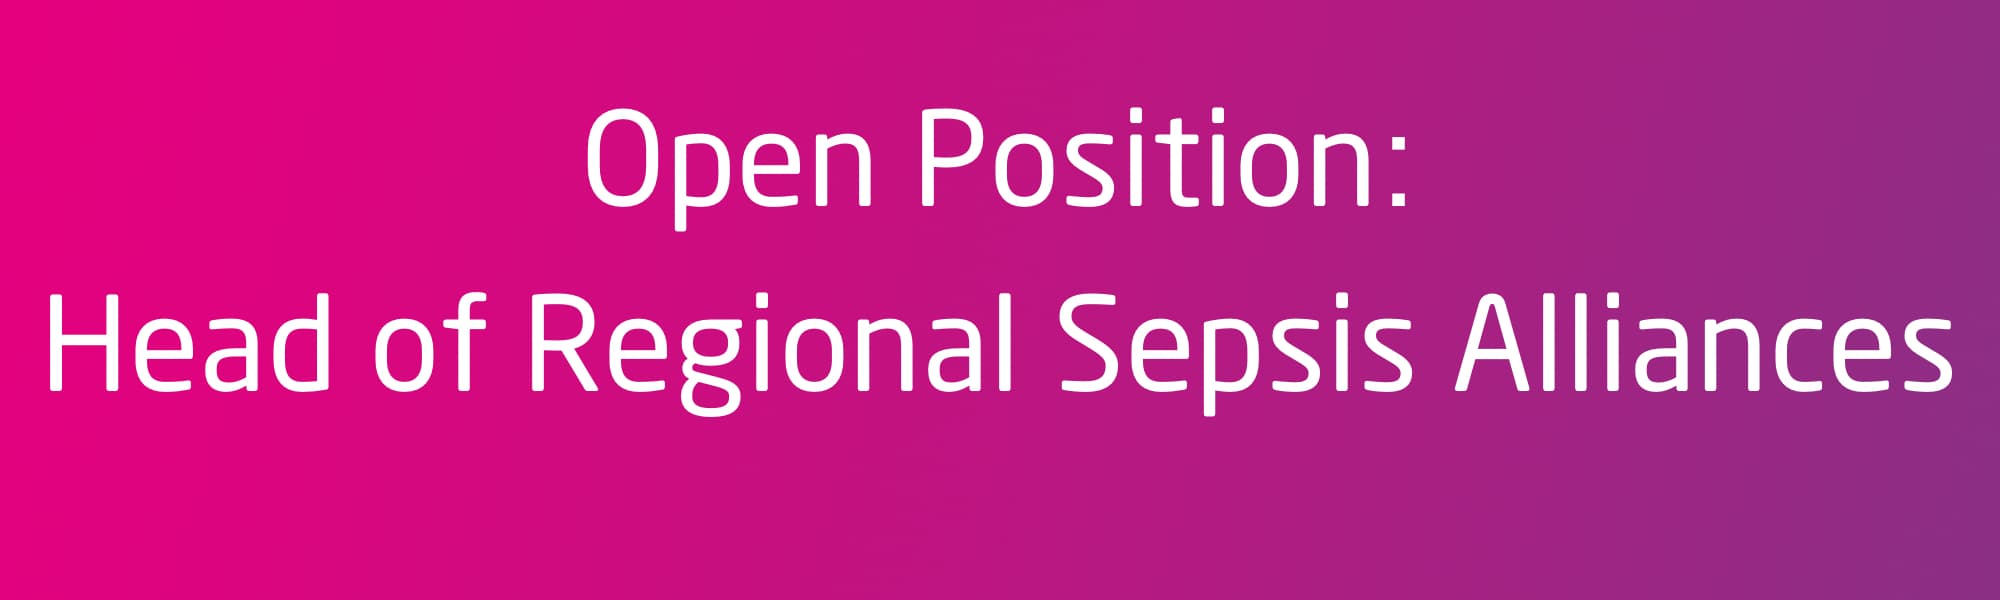 GSA Open Position Head of Regional Sepsis Alliances Liaison Officer.jpg